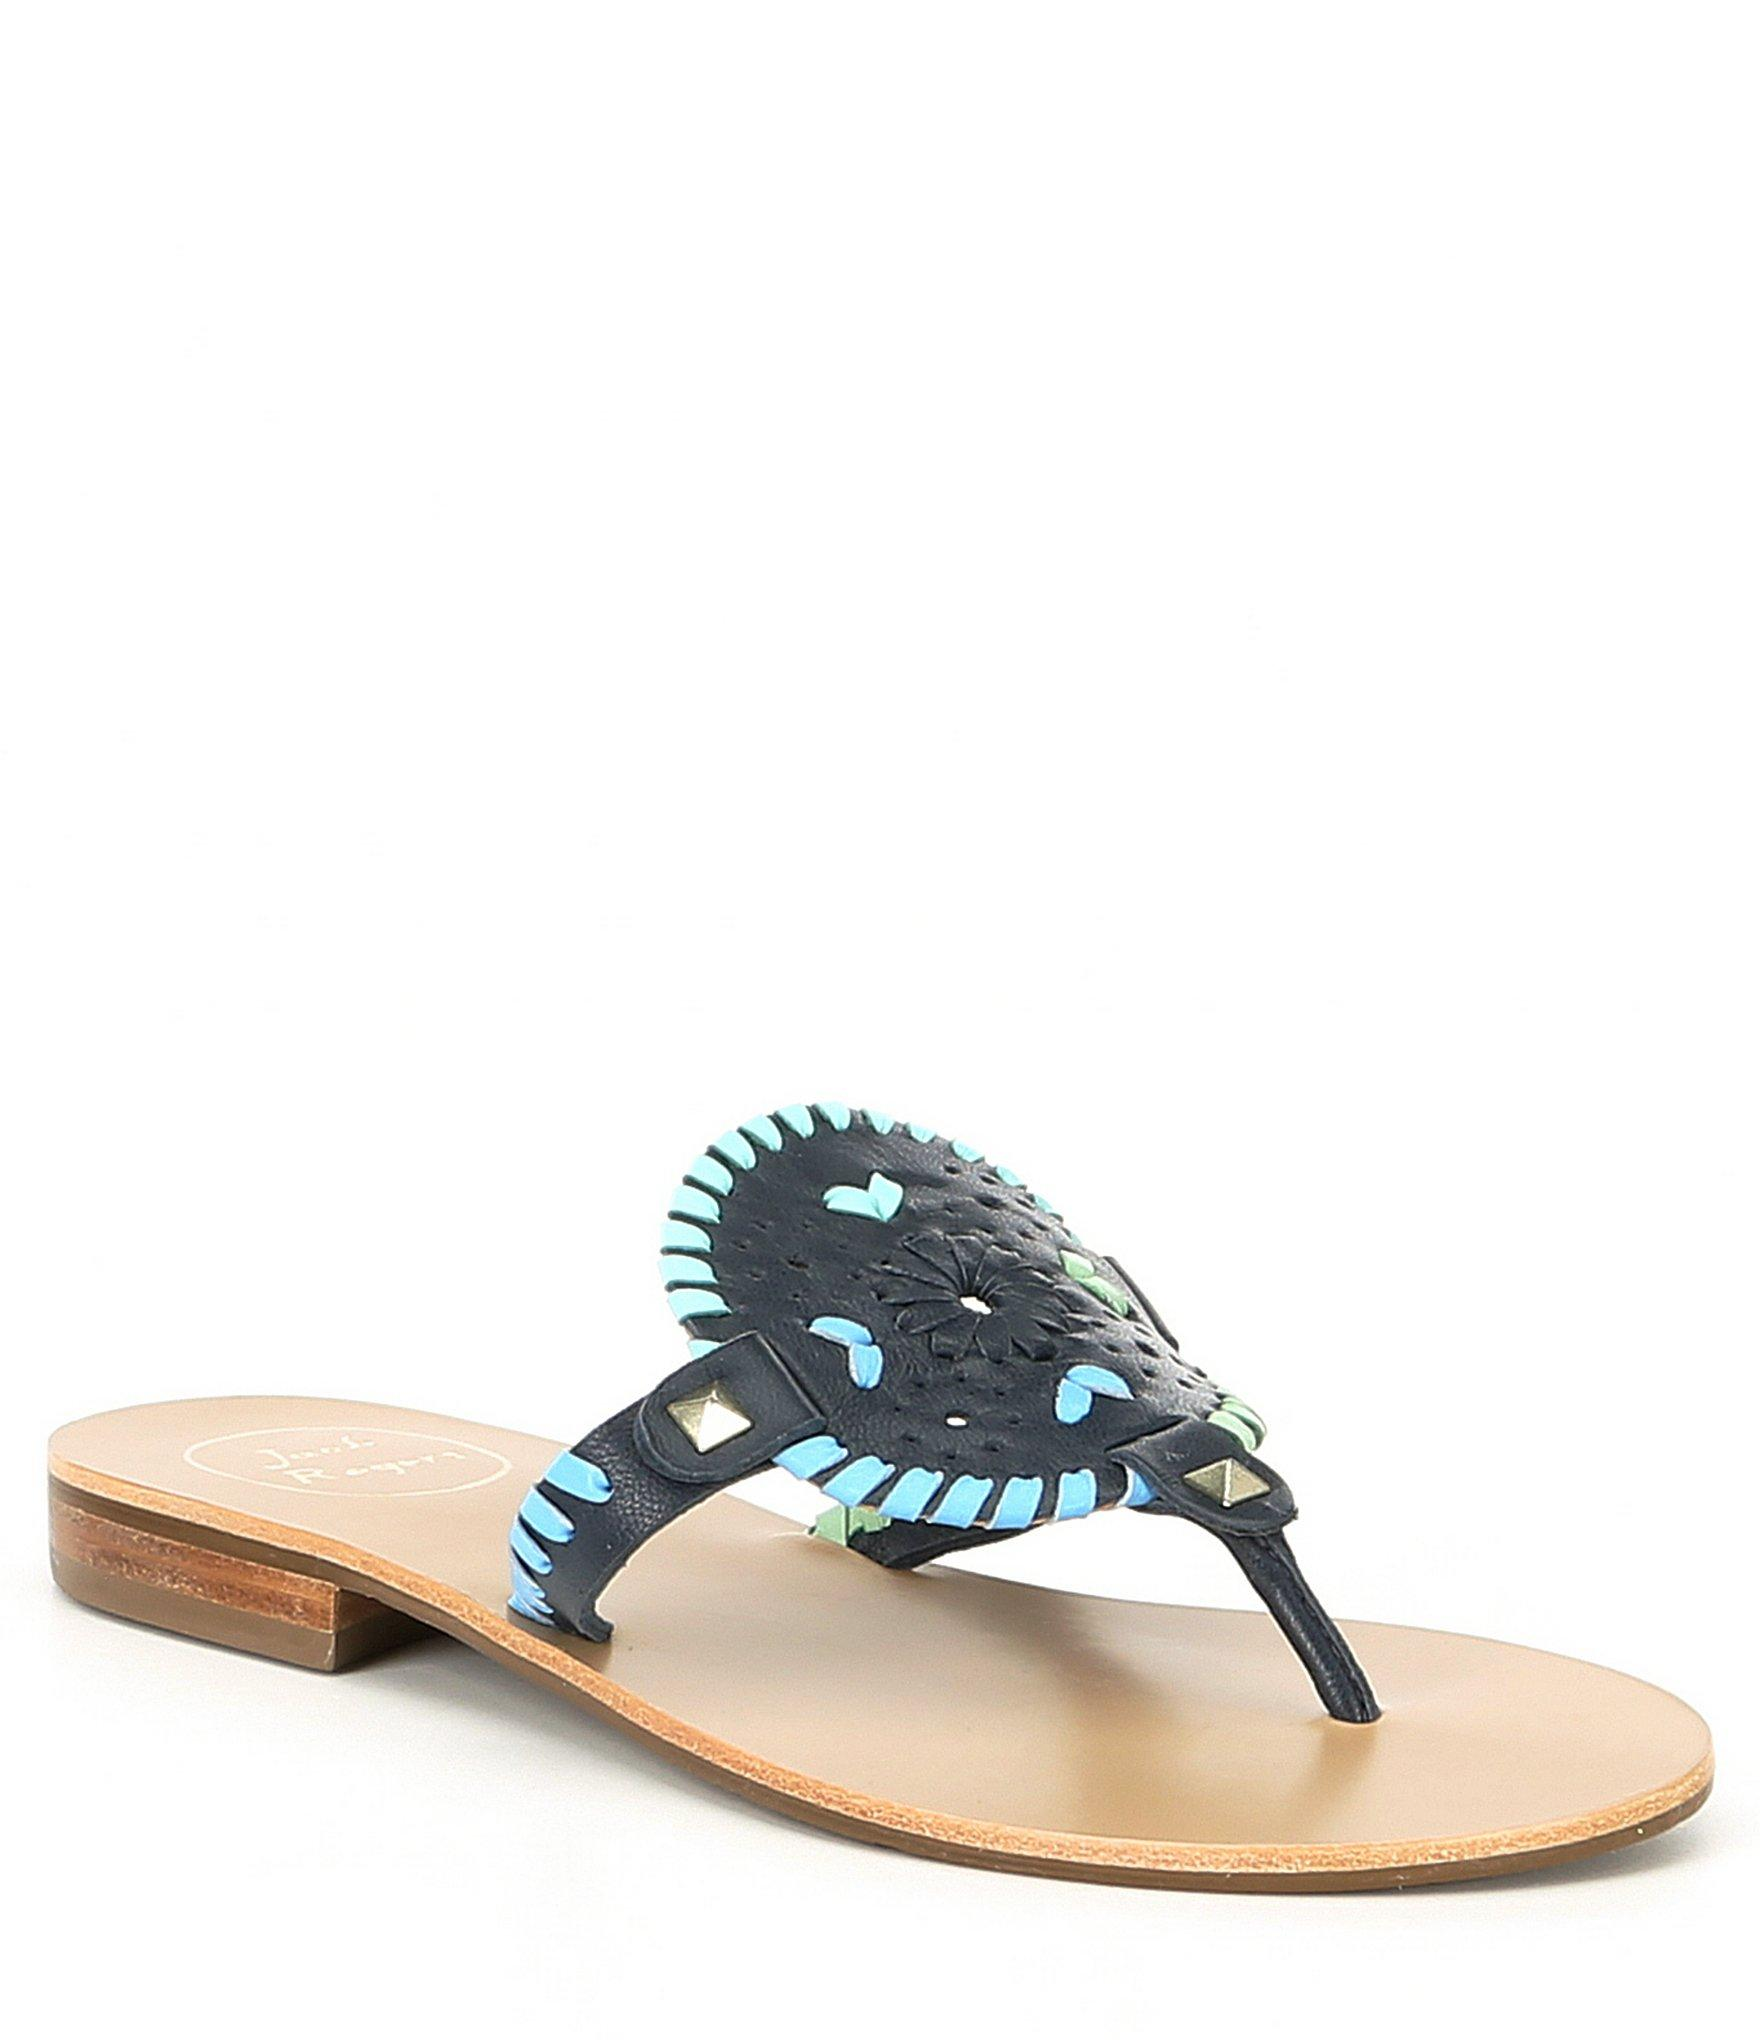 65c264a5b6eb Lyst - Jack Rogers Georgica Studded Leather Sandals in Blue